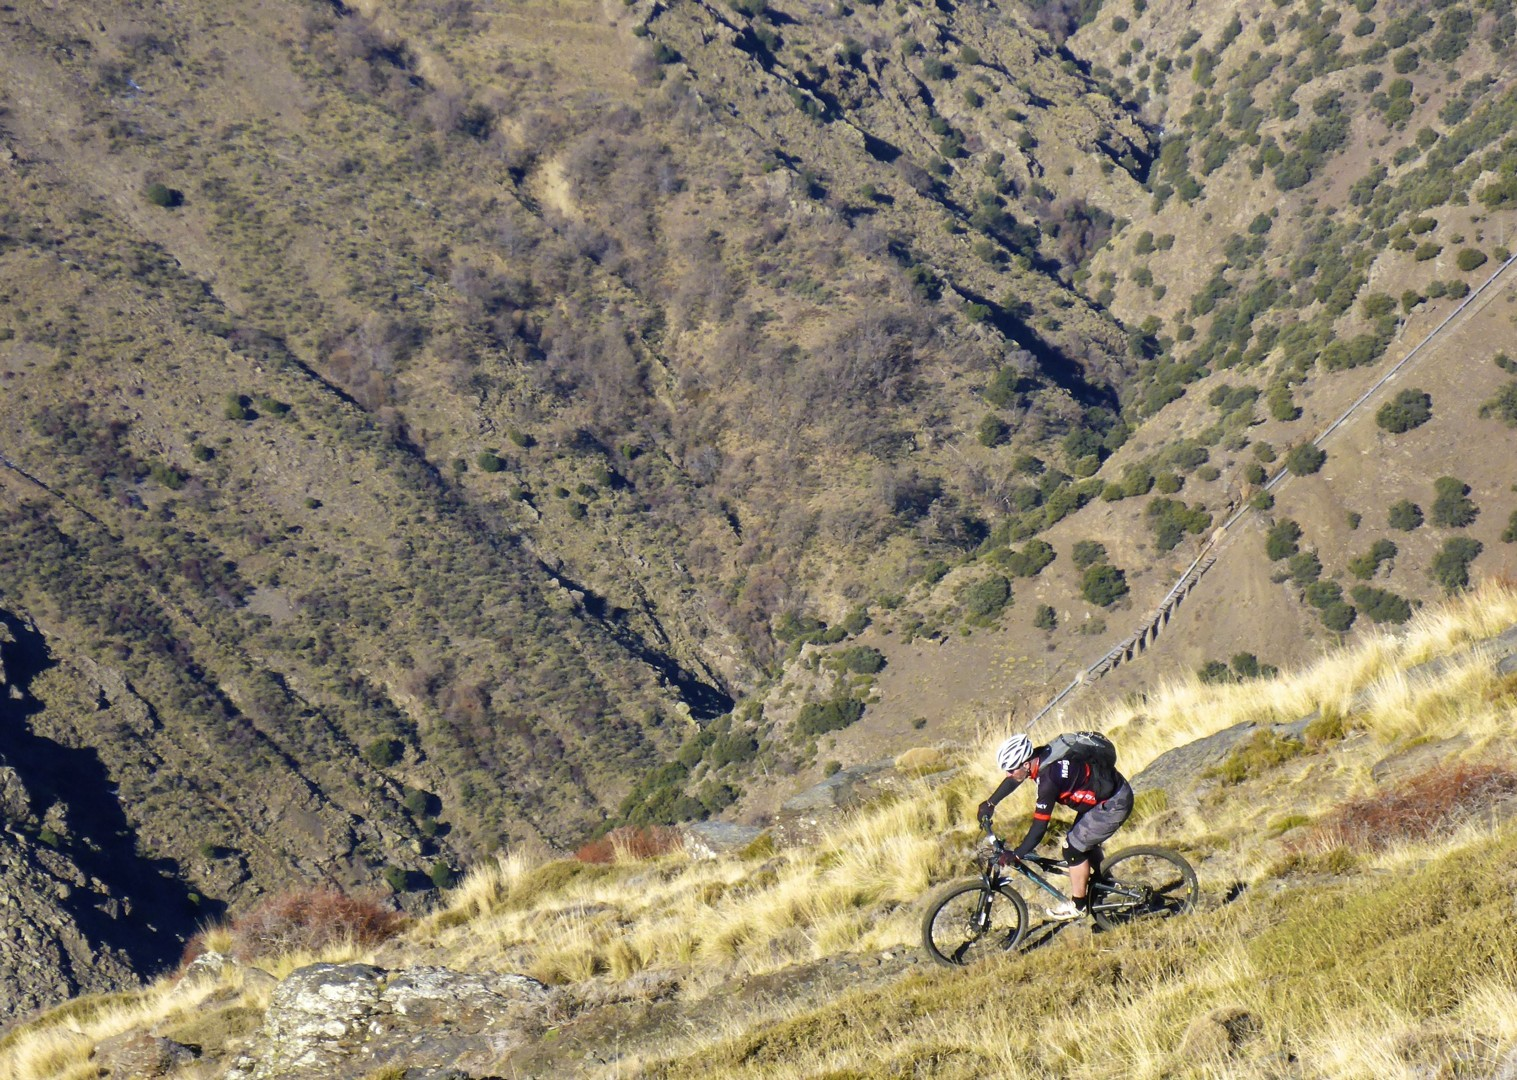 guided-mountain-bike-holiday-in-spain-in-sierra-nevada.jpg - Spain - Sensational Sierra Nevada - Mountain Biking